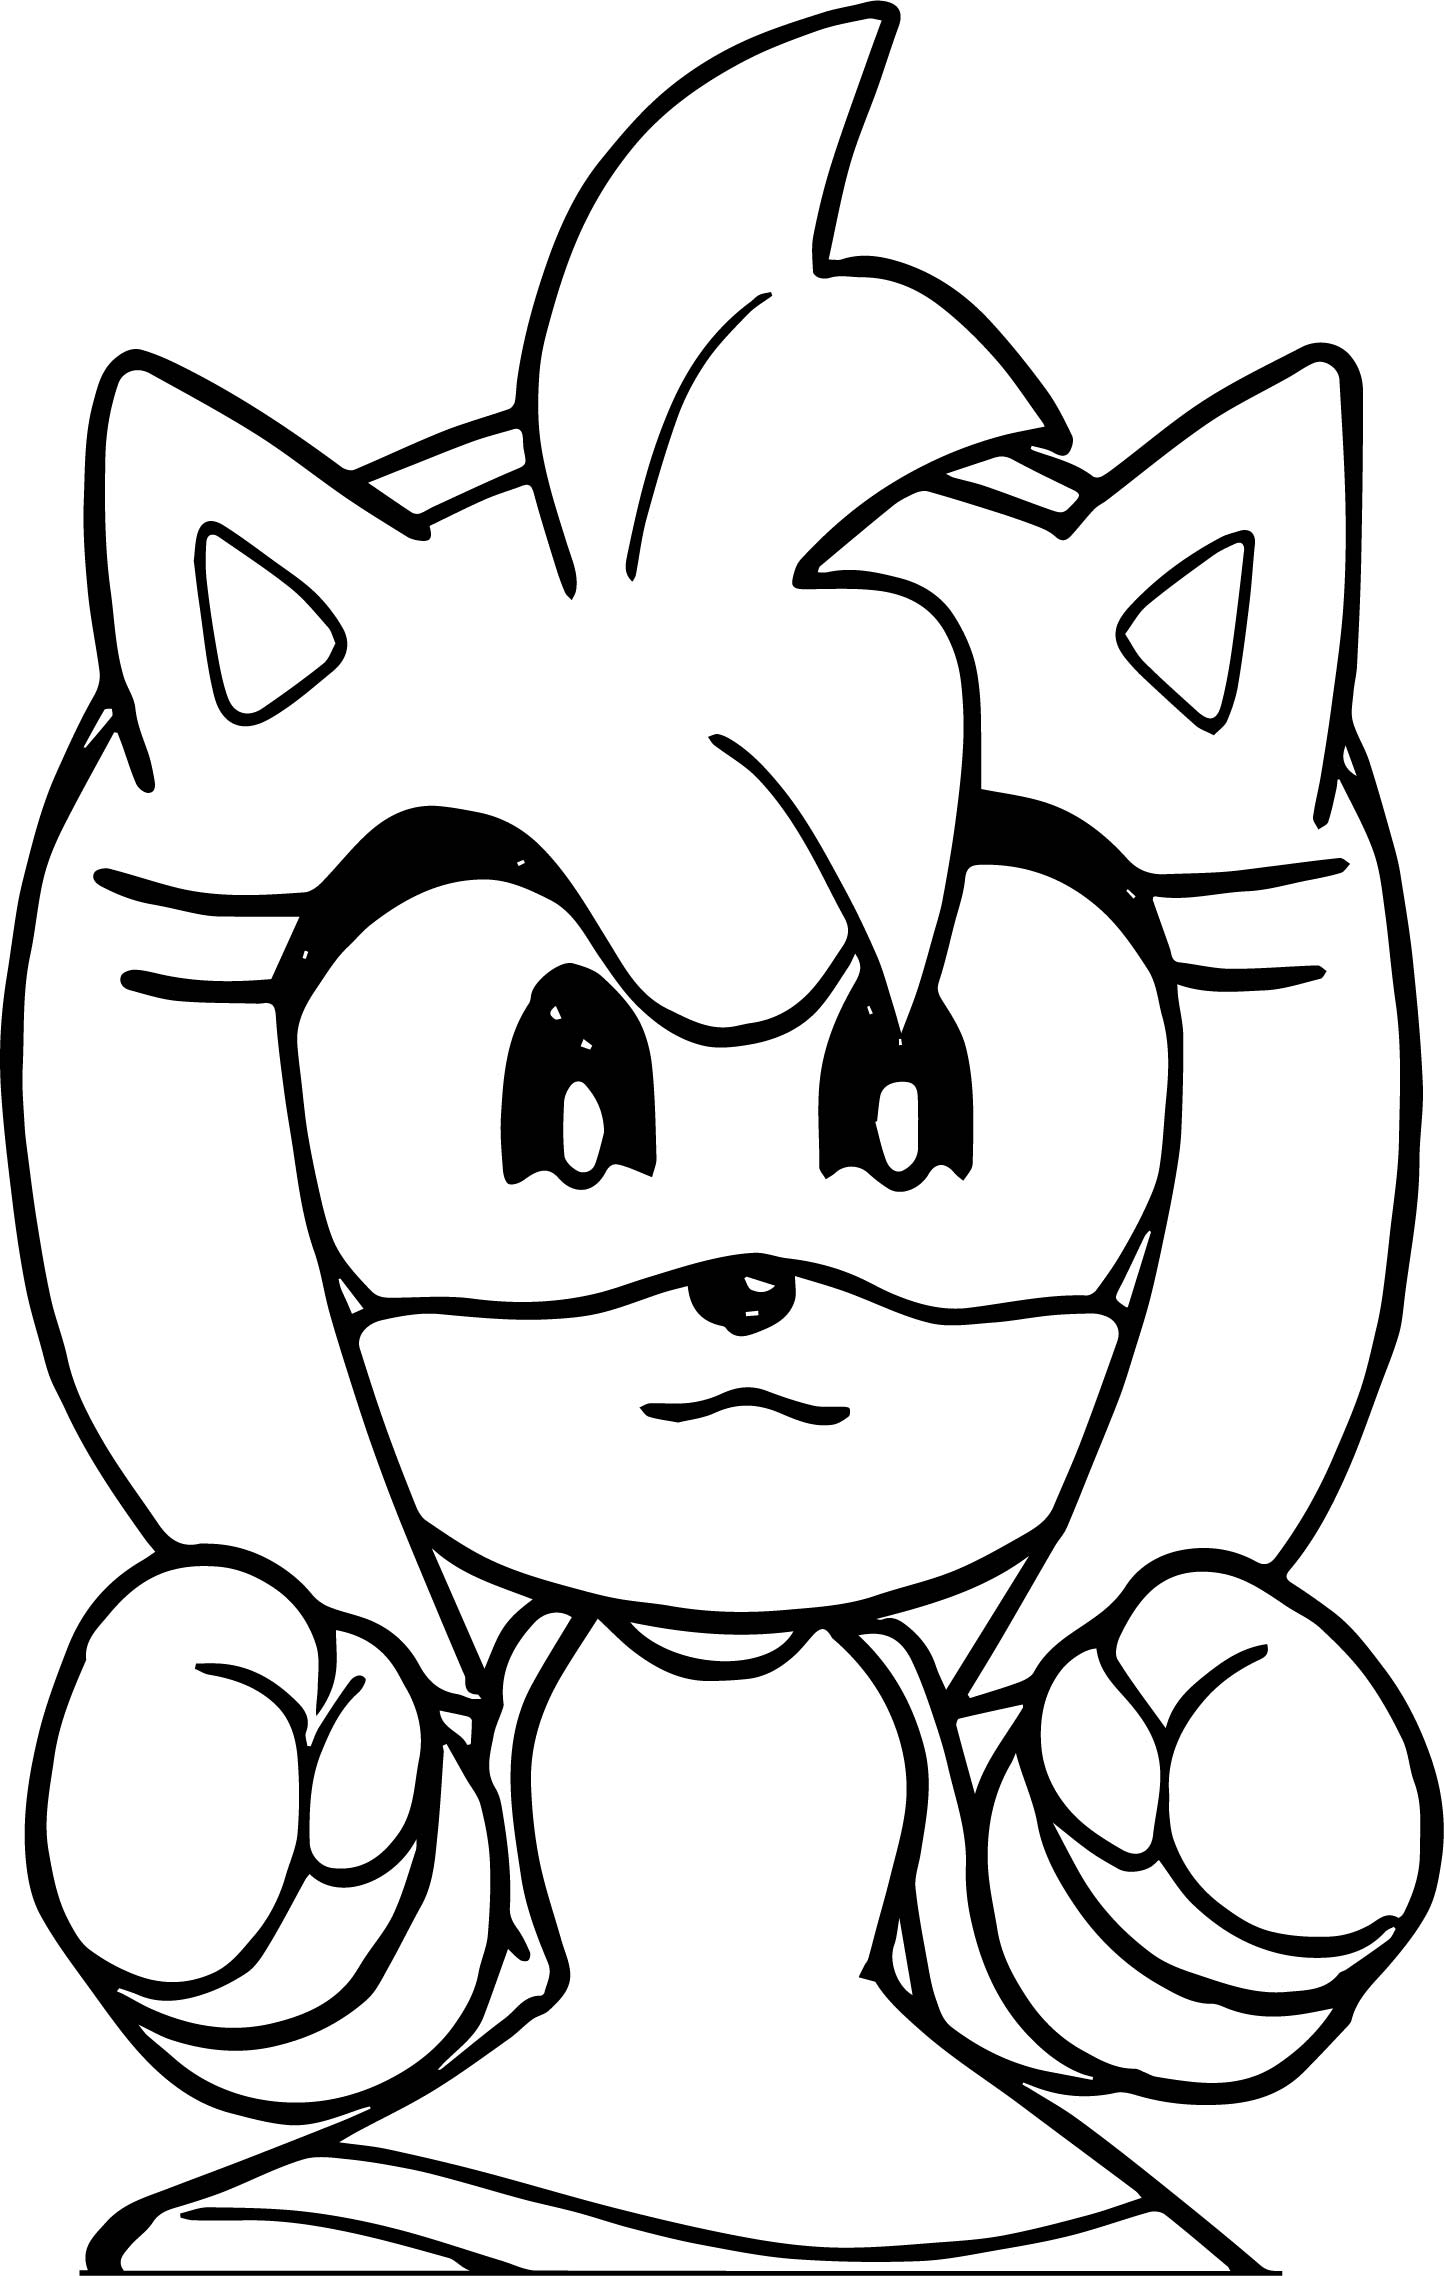 mini amy rose coloring page wecoloringpage